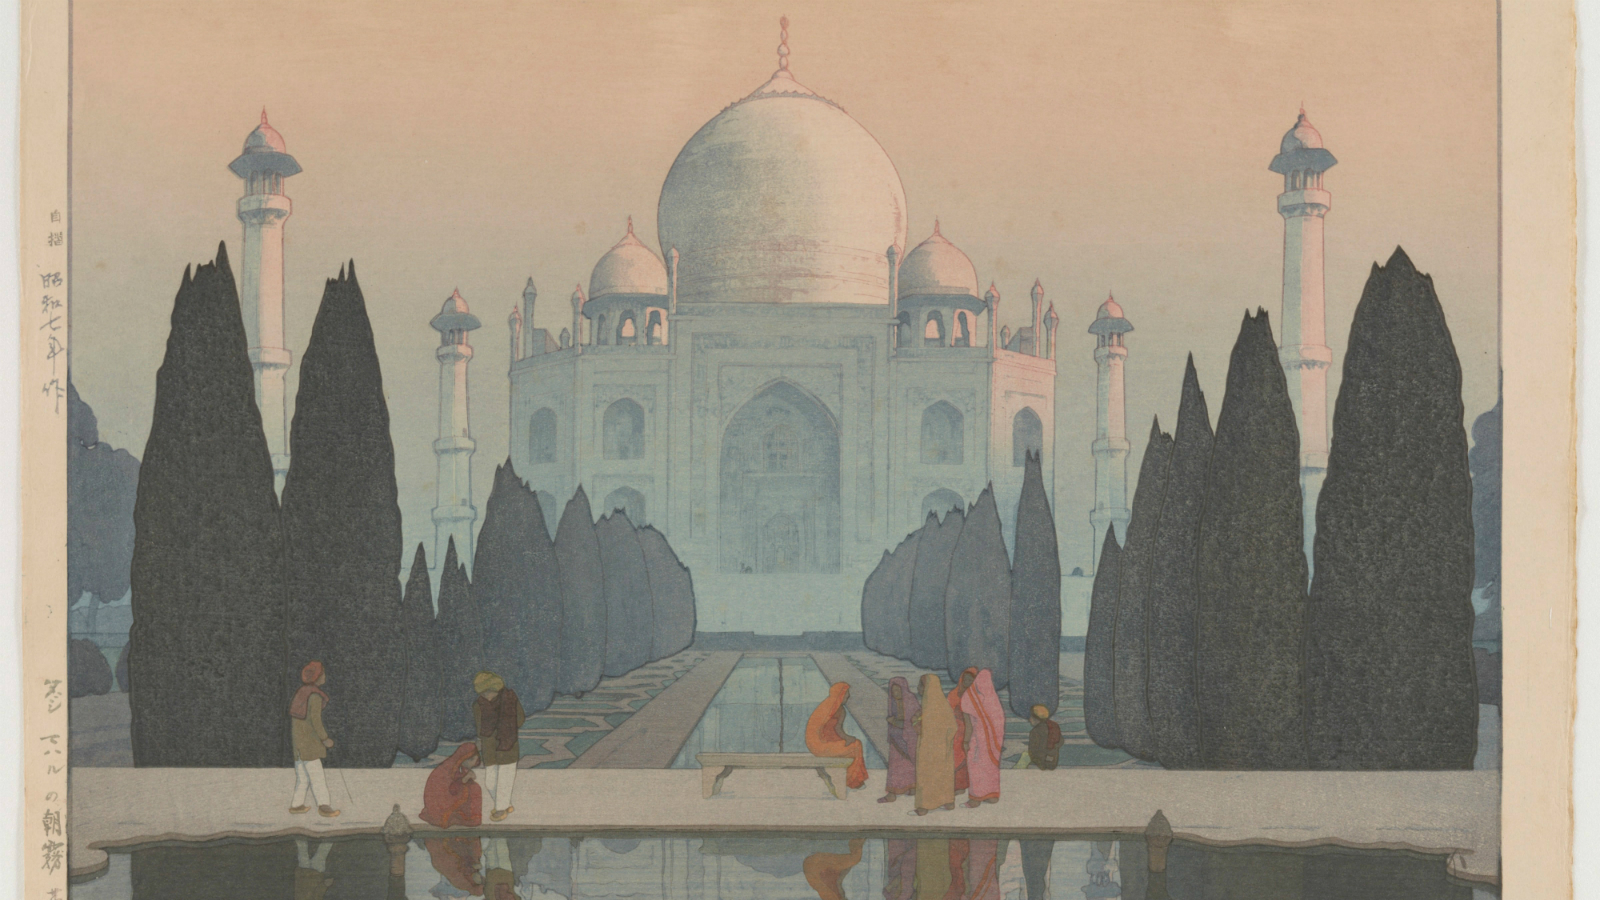 Morning Mist in Taj Mahal, No 5, from the series, India and Southeast Asia, by Yoshida Hiroshi, 1931.